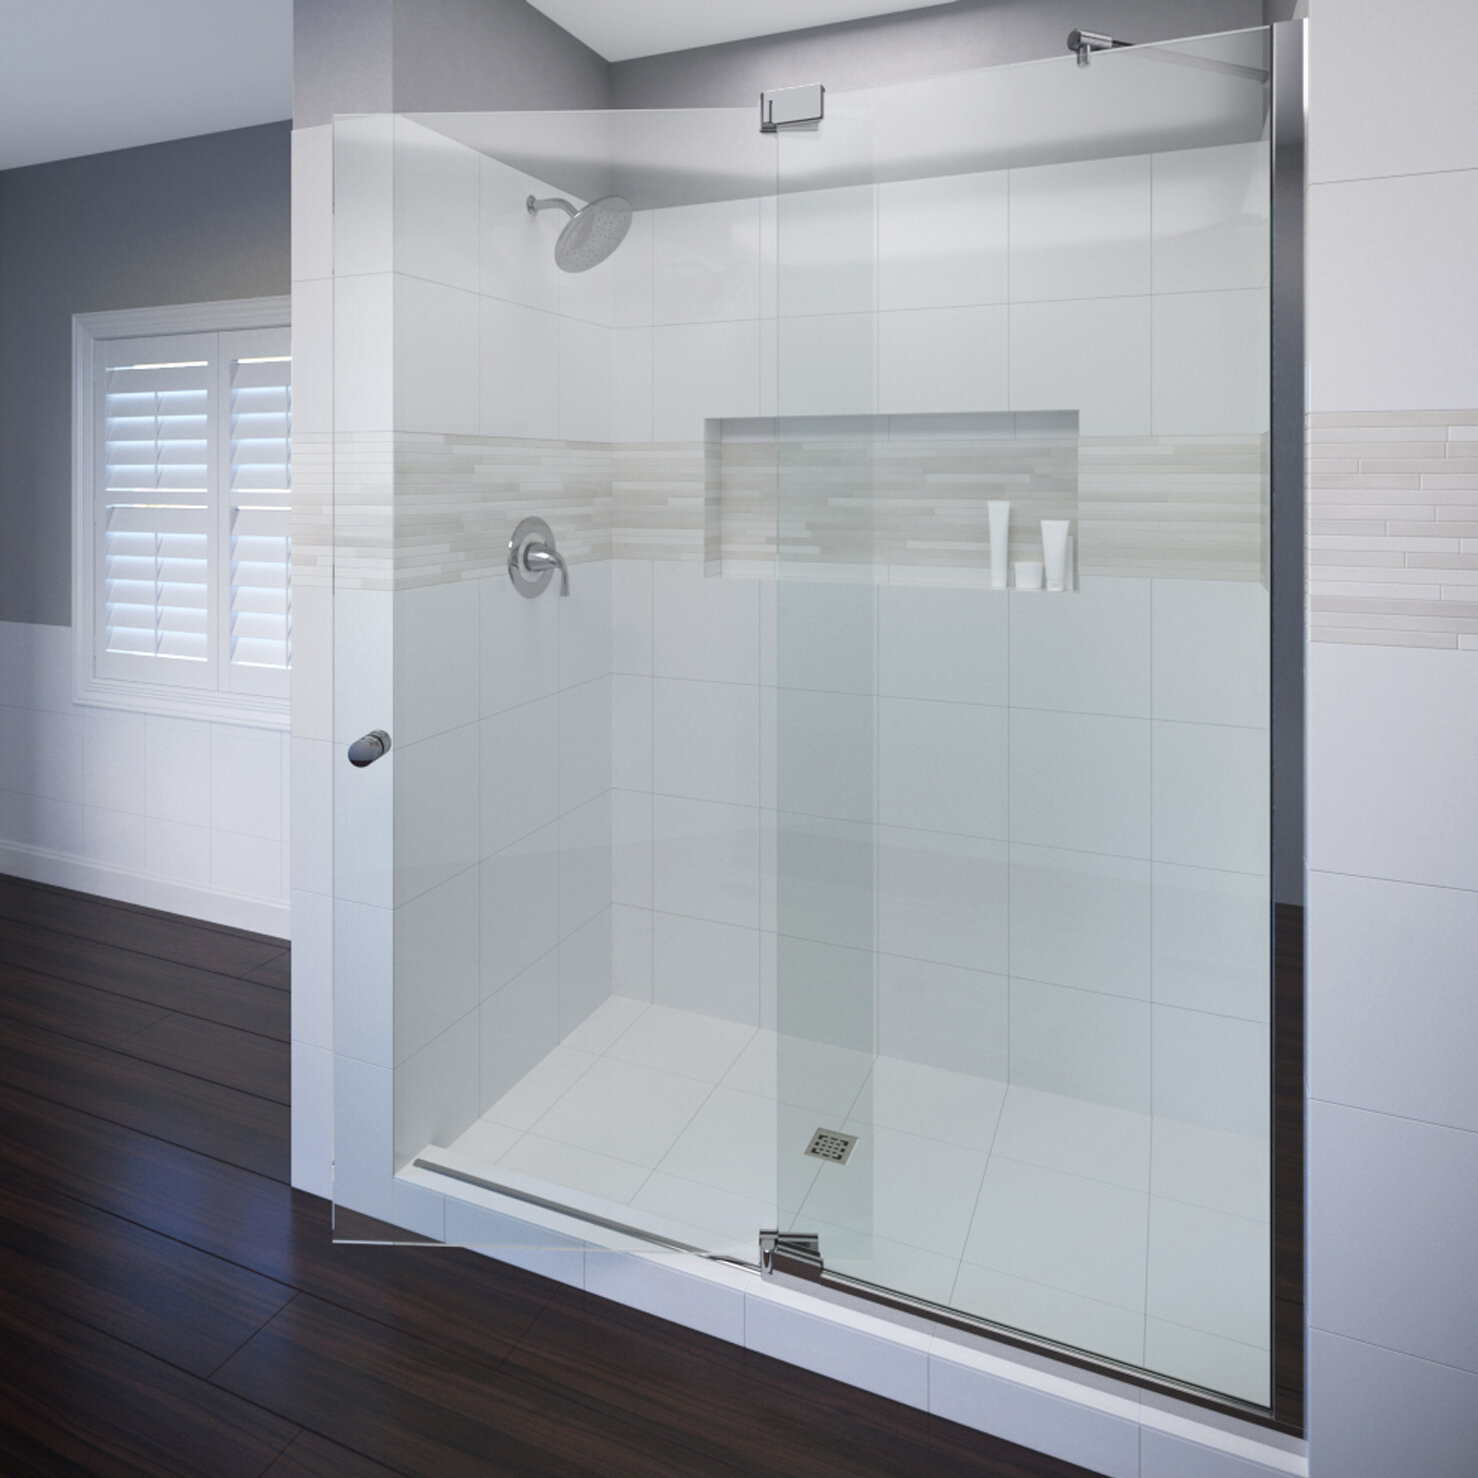 Cantour 48 X 76 Pivot Door And Panel Shower Door